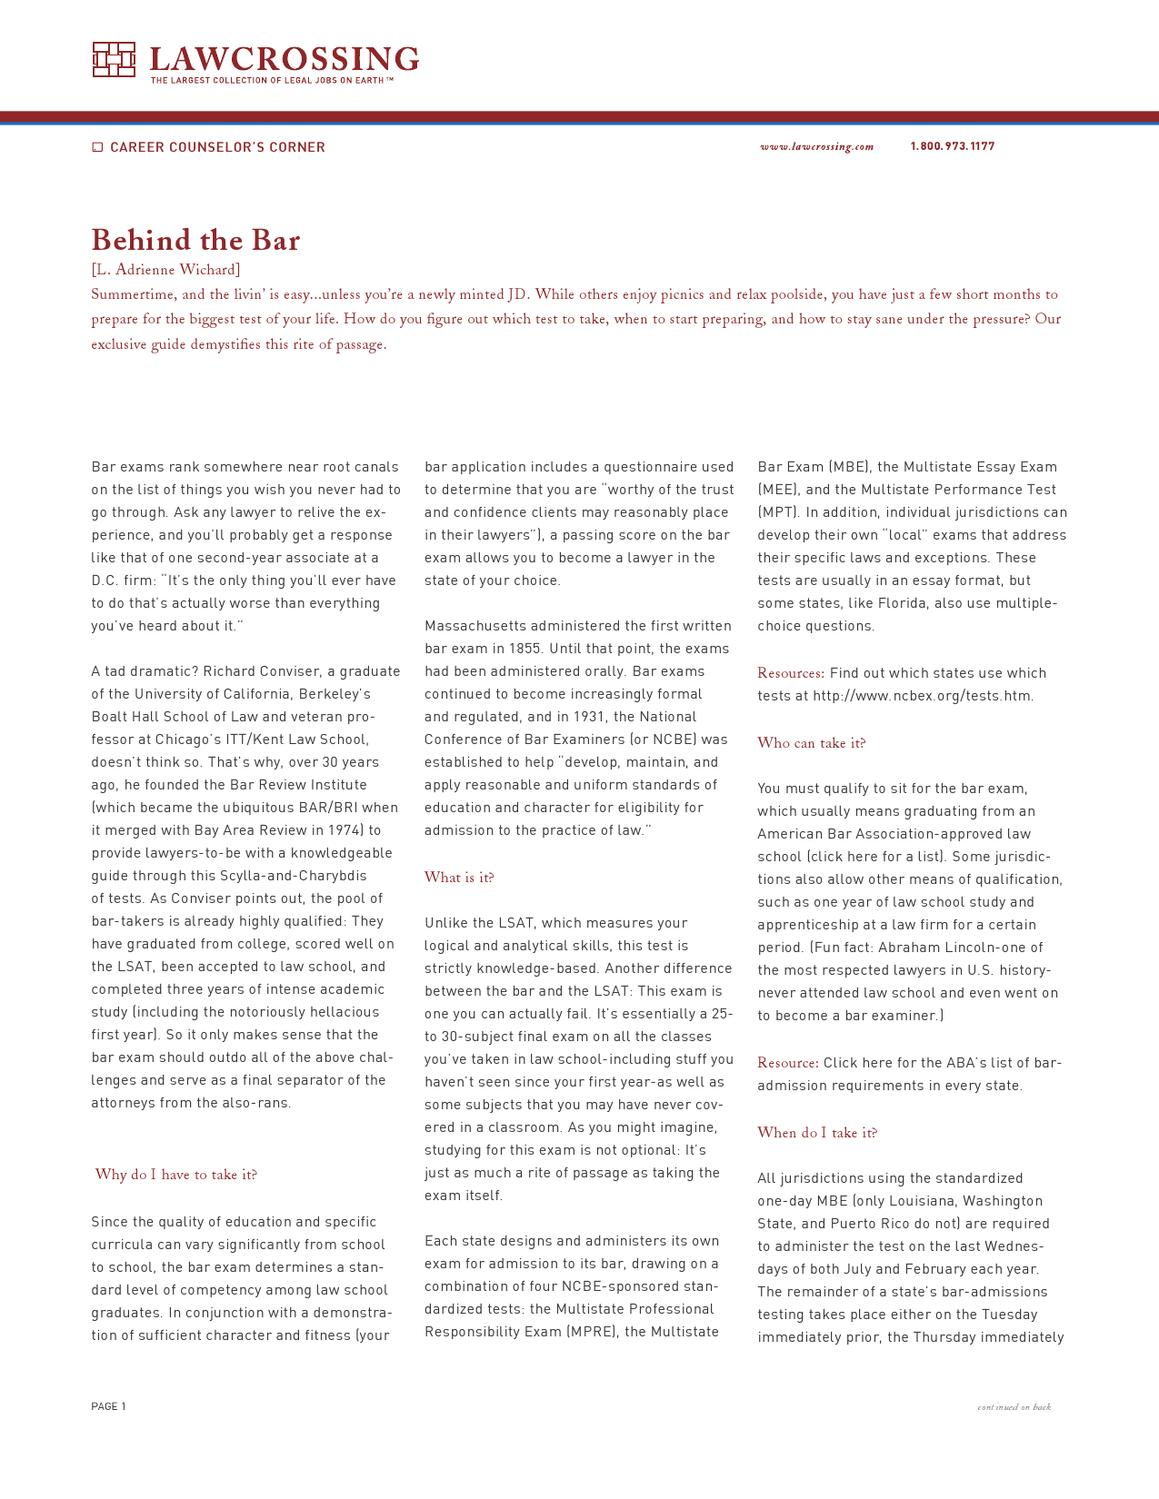 Behind the Bar by LawCrossing - issuu